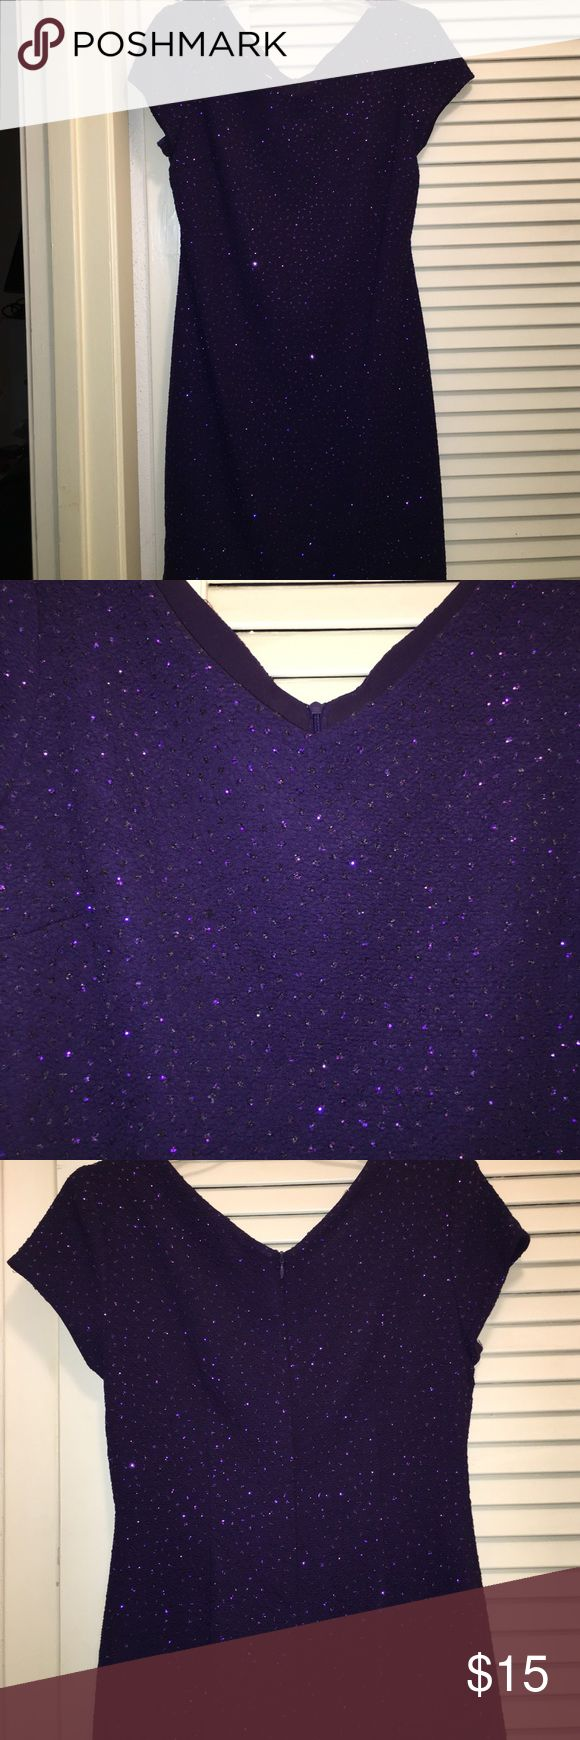 Purple, sparkly dress. Size 6 Great condition, barely worn. A great going out dress. Has sparkles all over dress. David Warren Dresses Midi